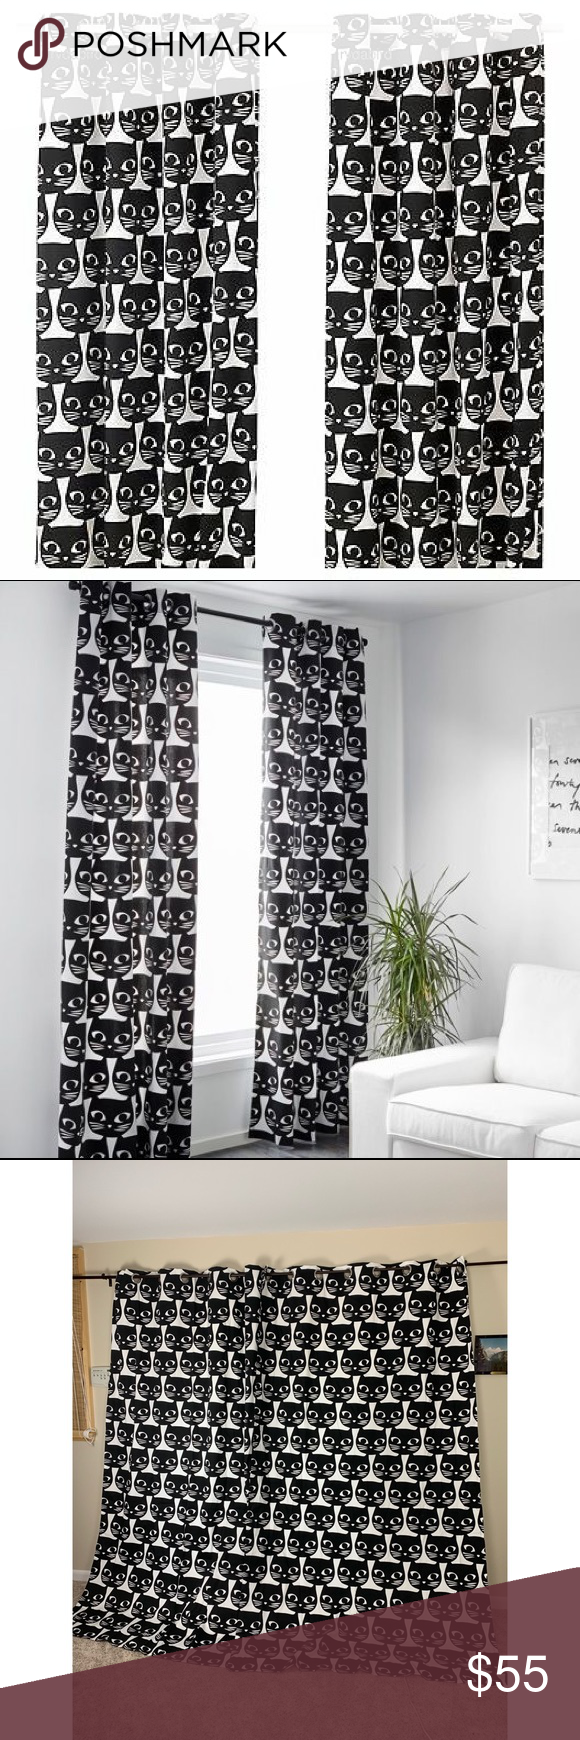 IKEA Mattram Cat Curtains Black and